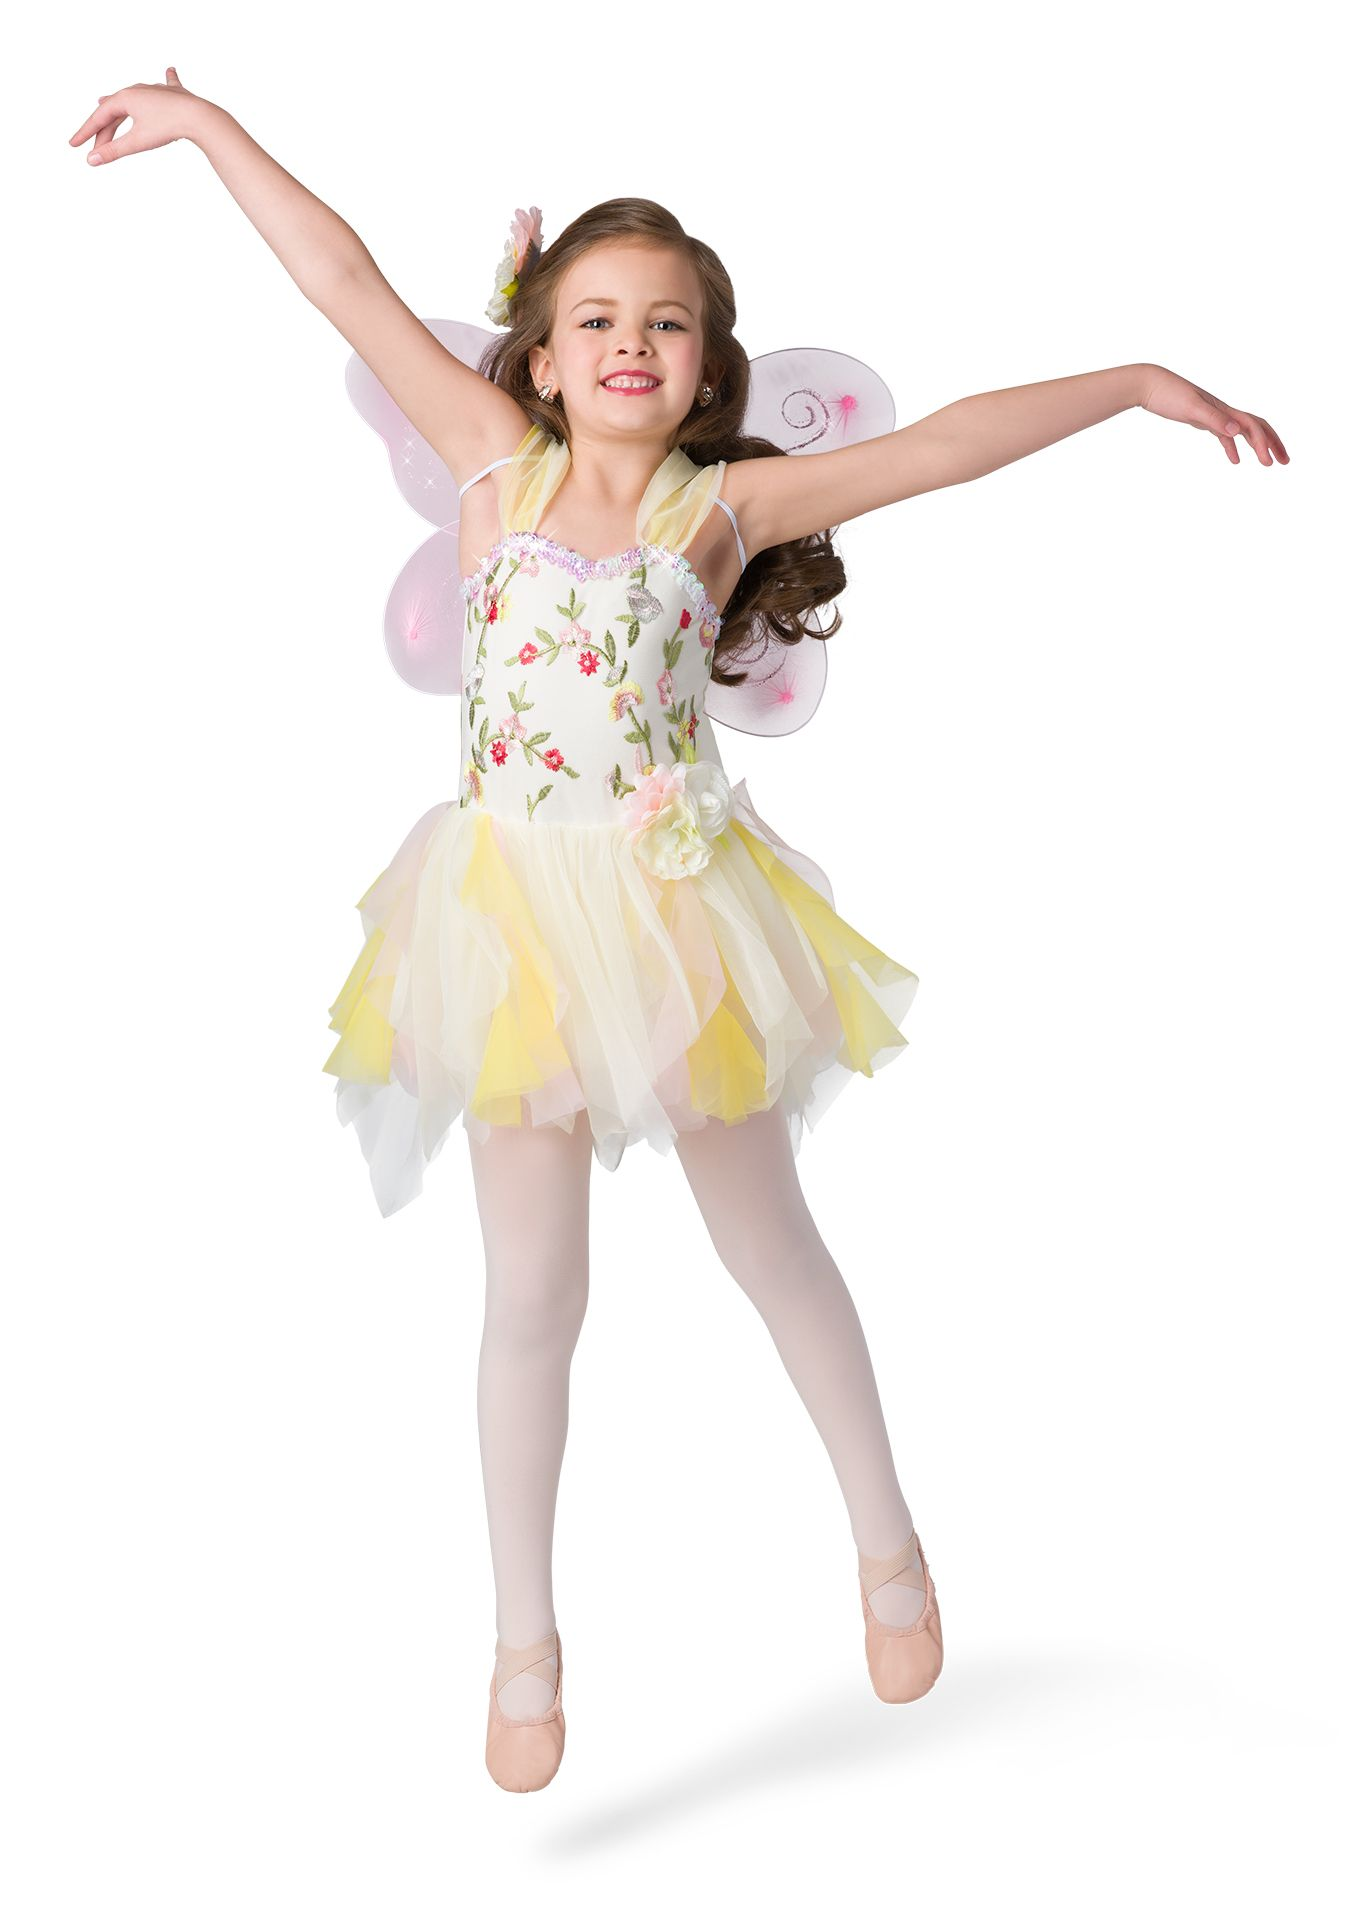 New Ballet Pageant Costume Organdy 3 Layer Attached Tutu Multicolor Sequin